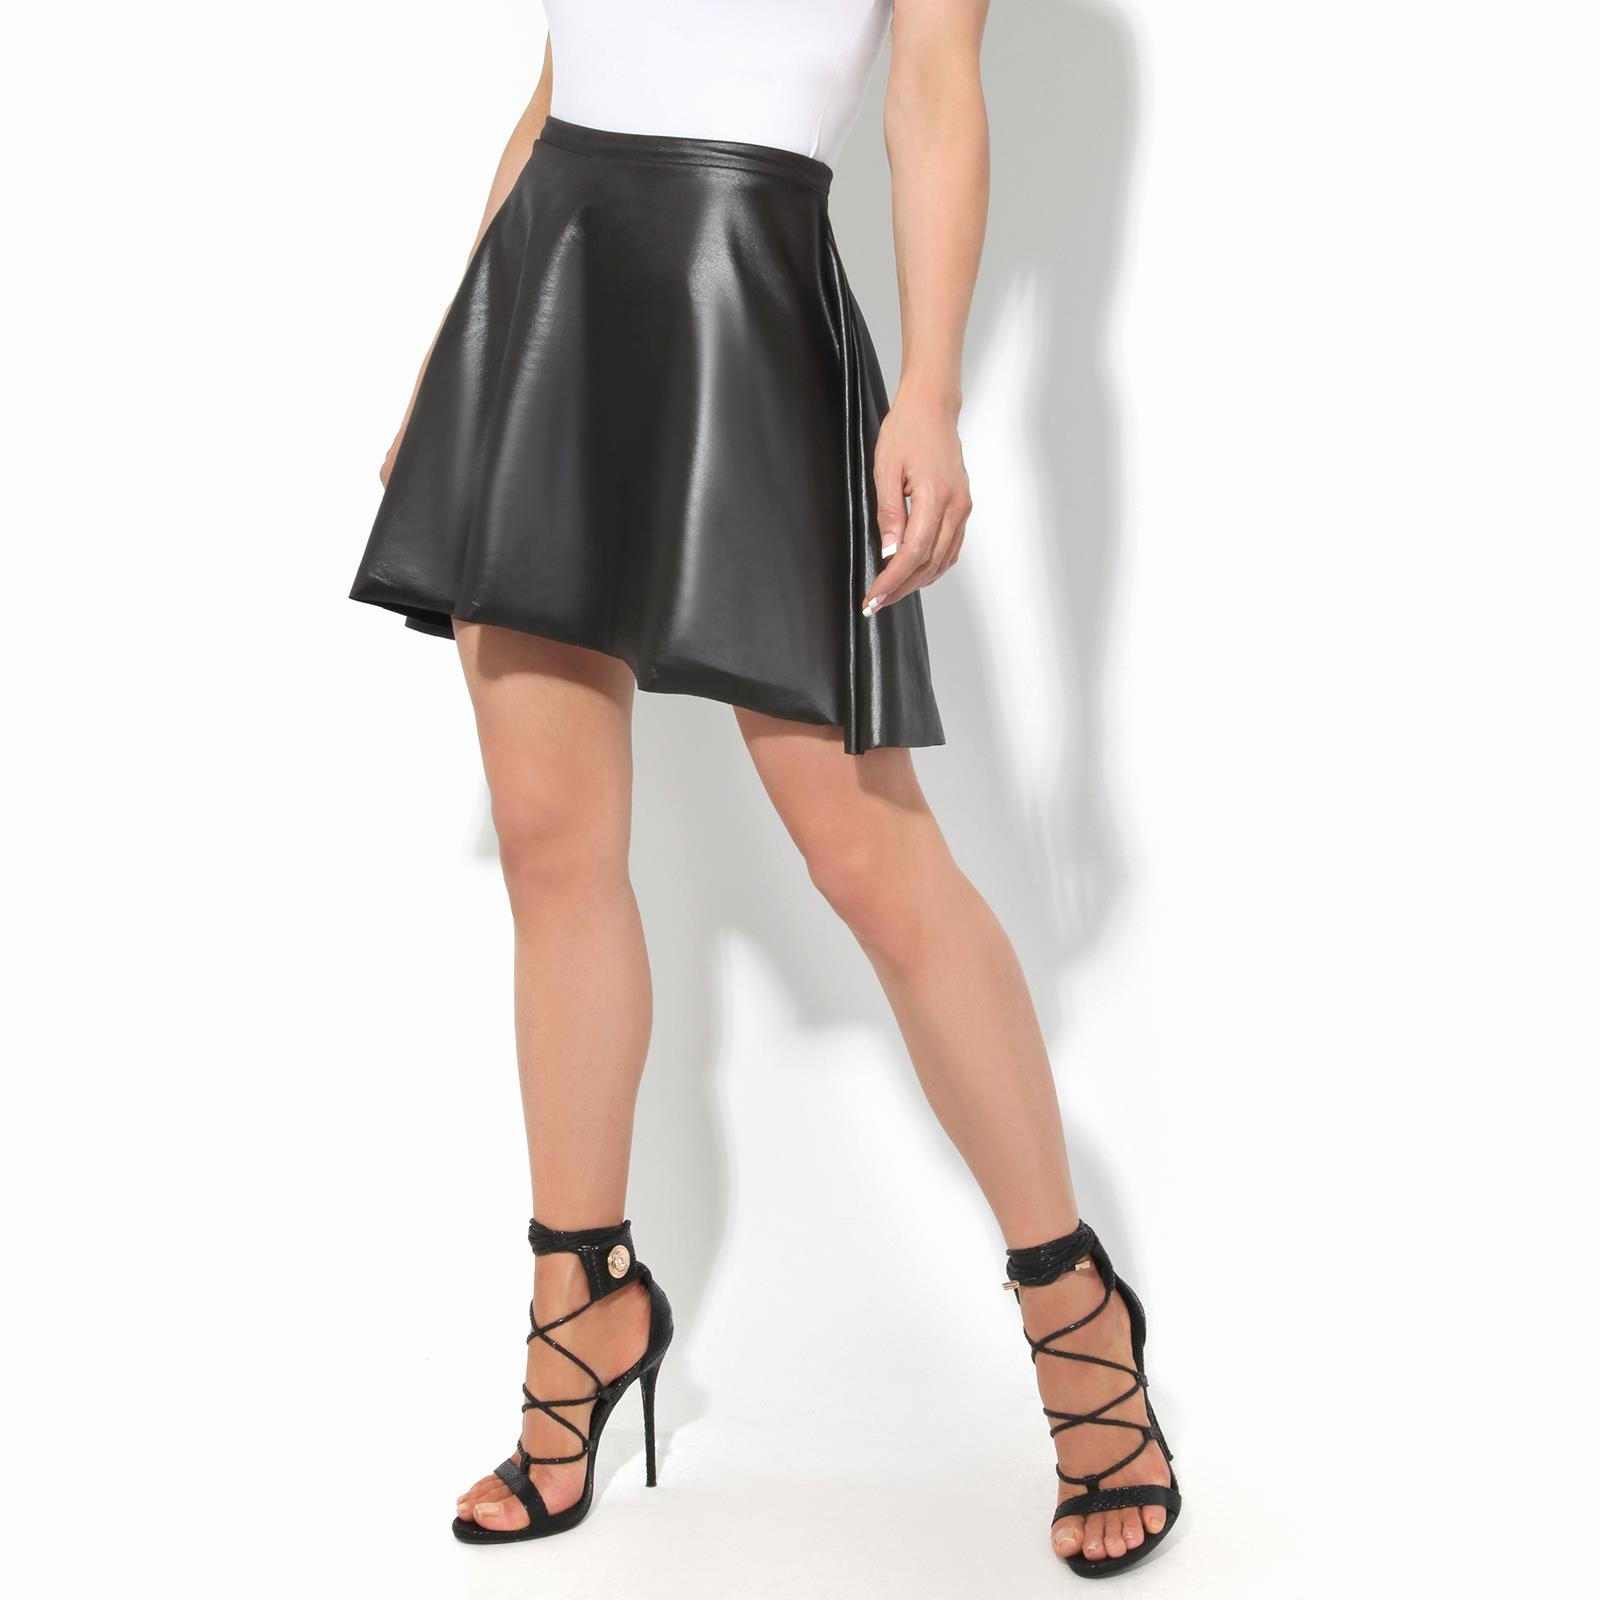 Womens-High-Waist-Mini-Skirt-PVC-Leather-A-Line-Swing-Flared-Full-Pleated-Party thumbnail 4